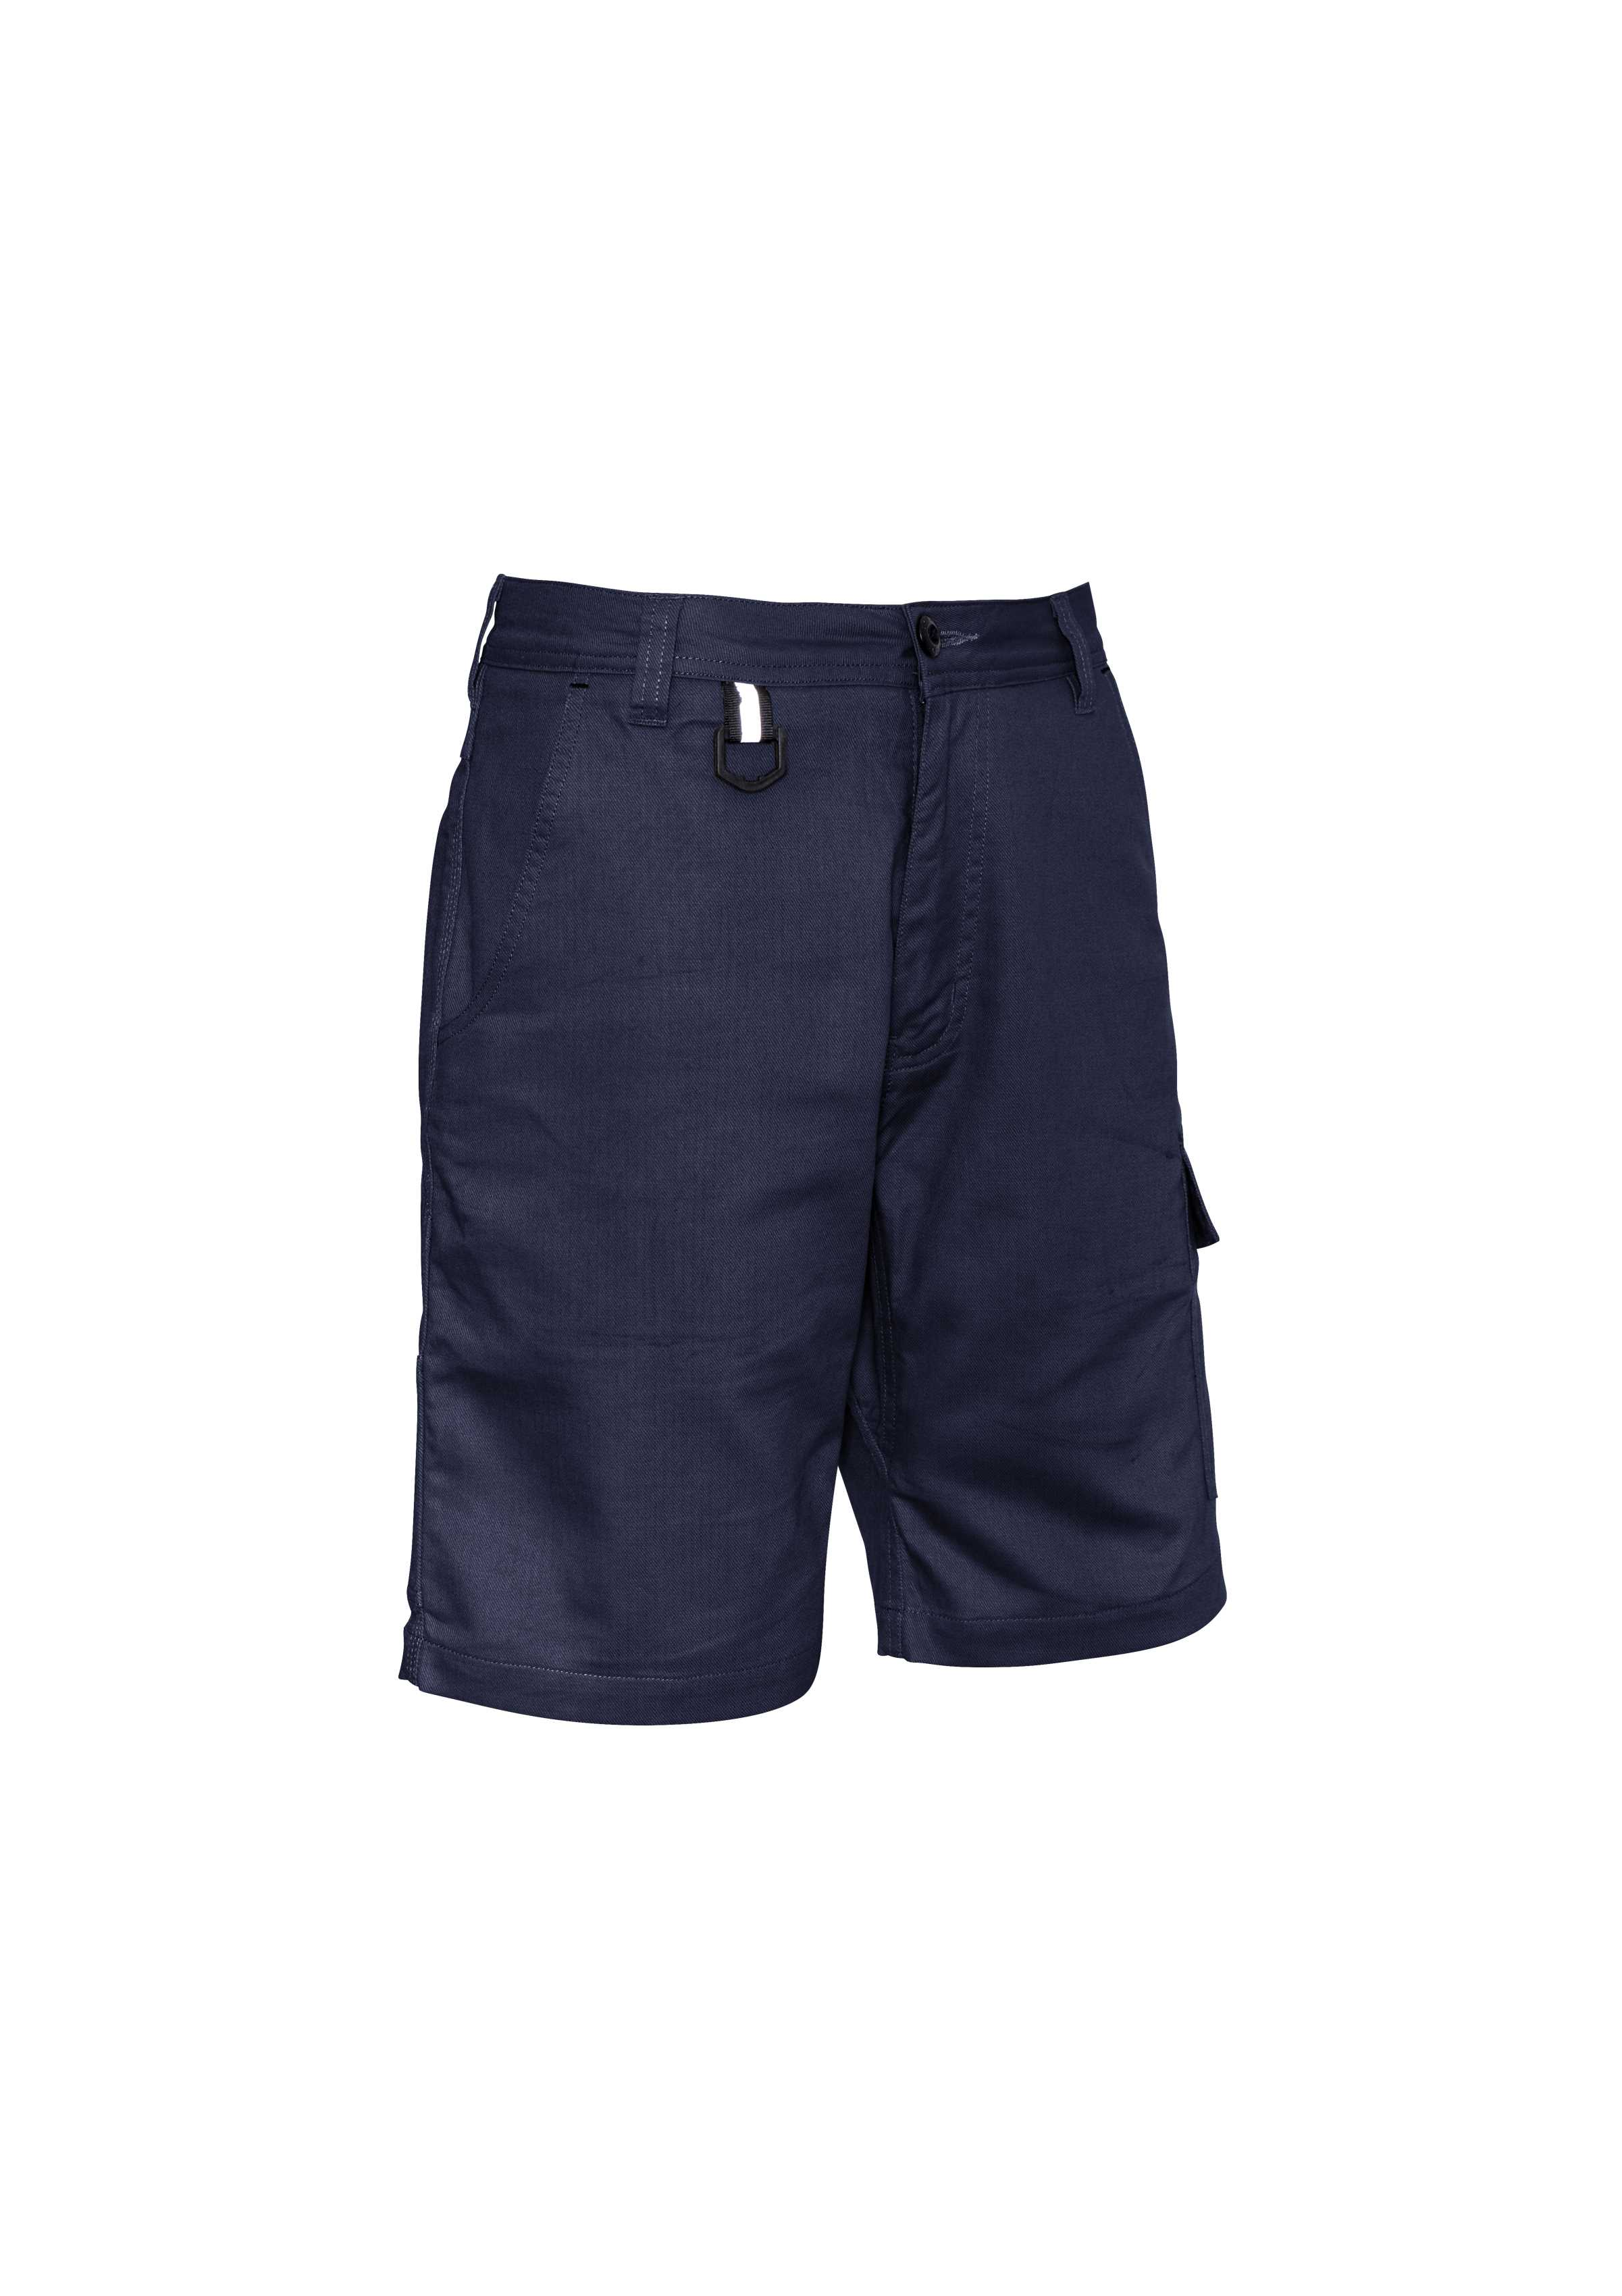 ZS505_Navy_FrontSide